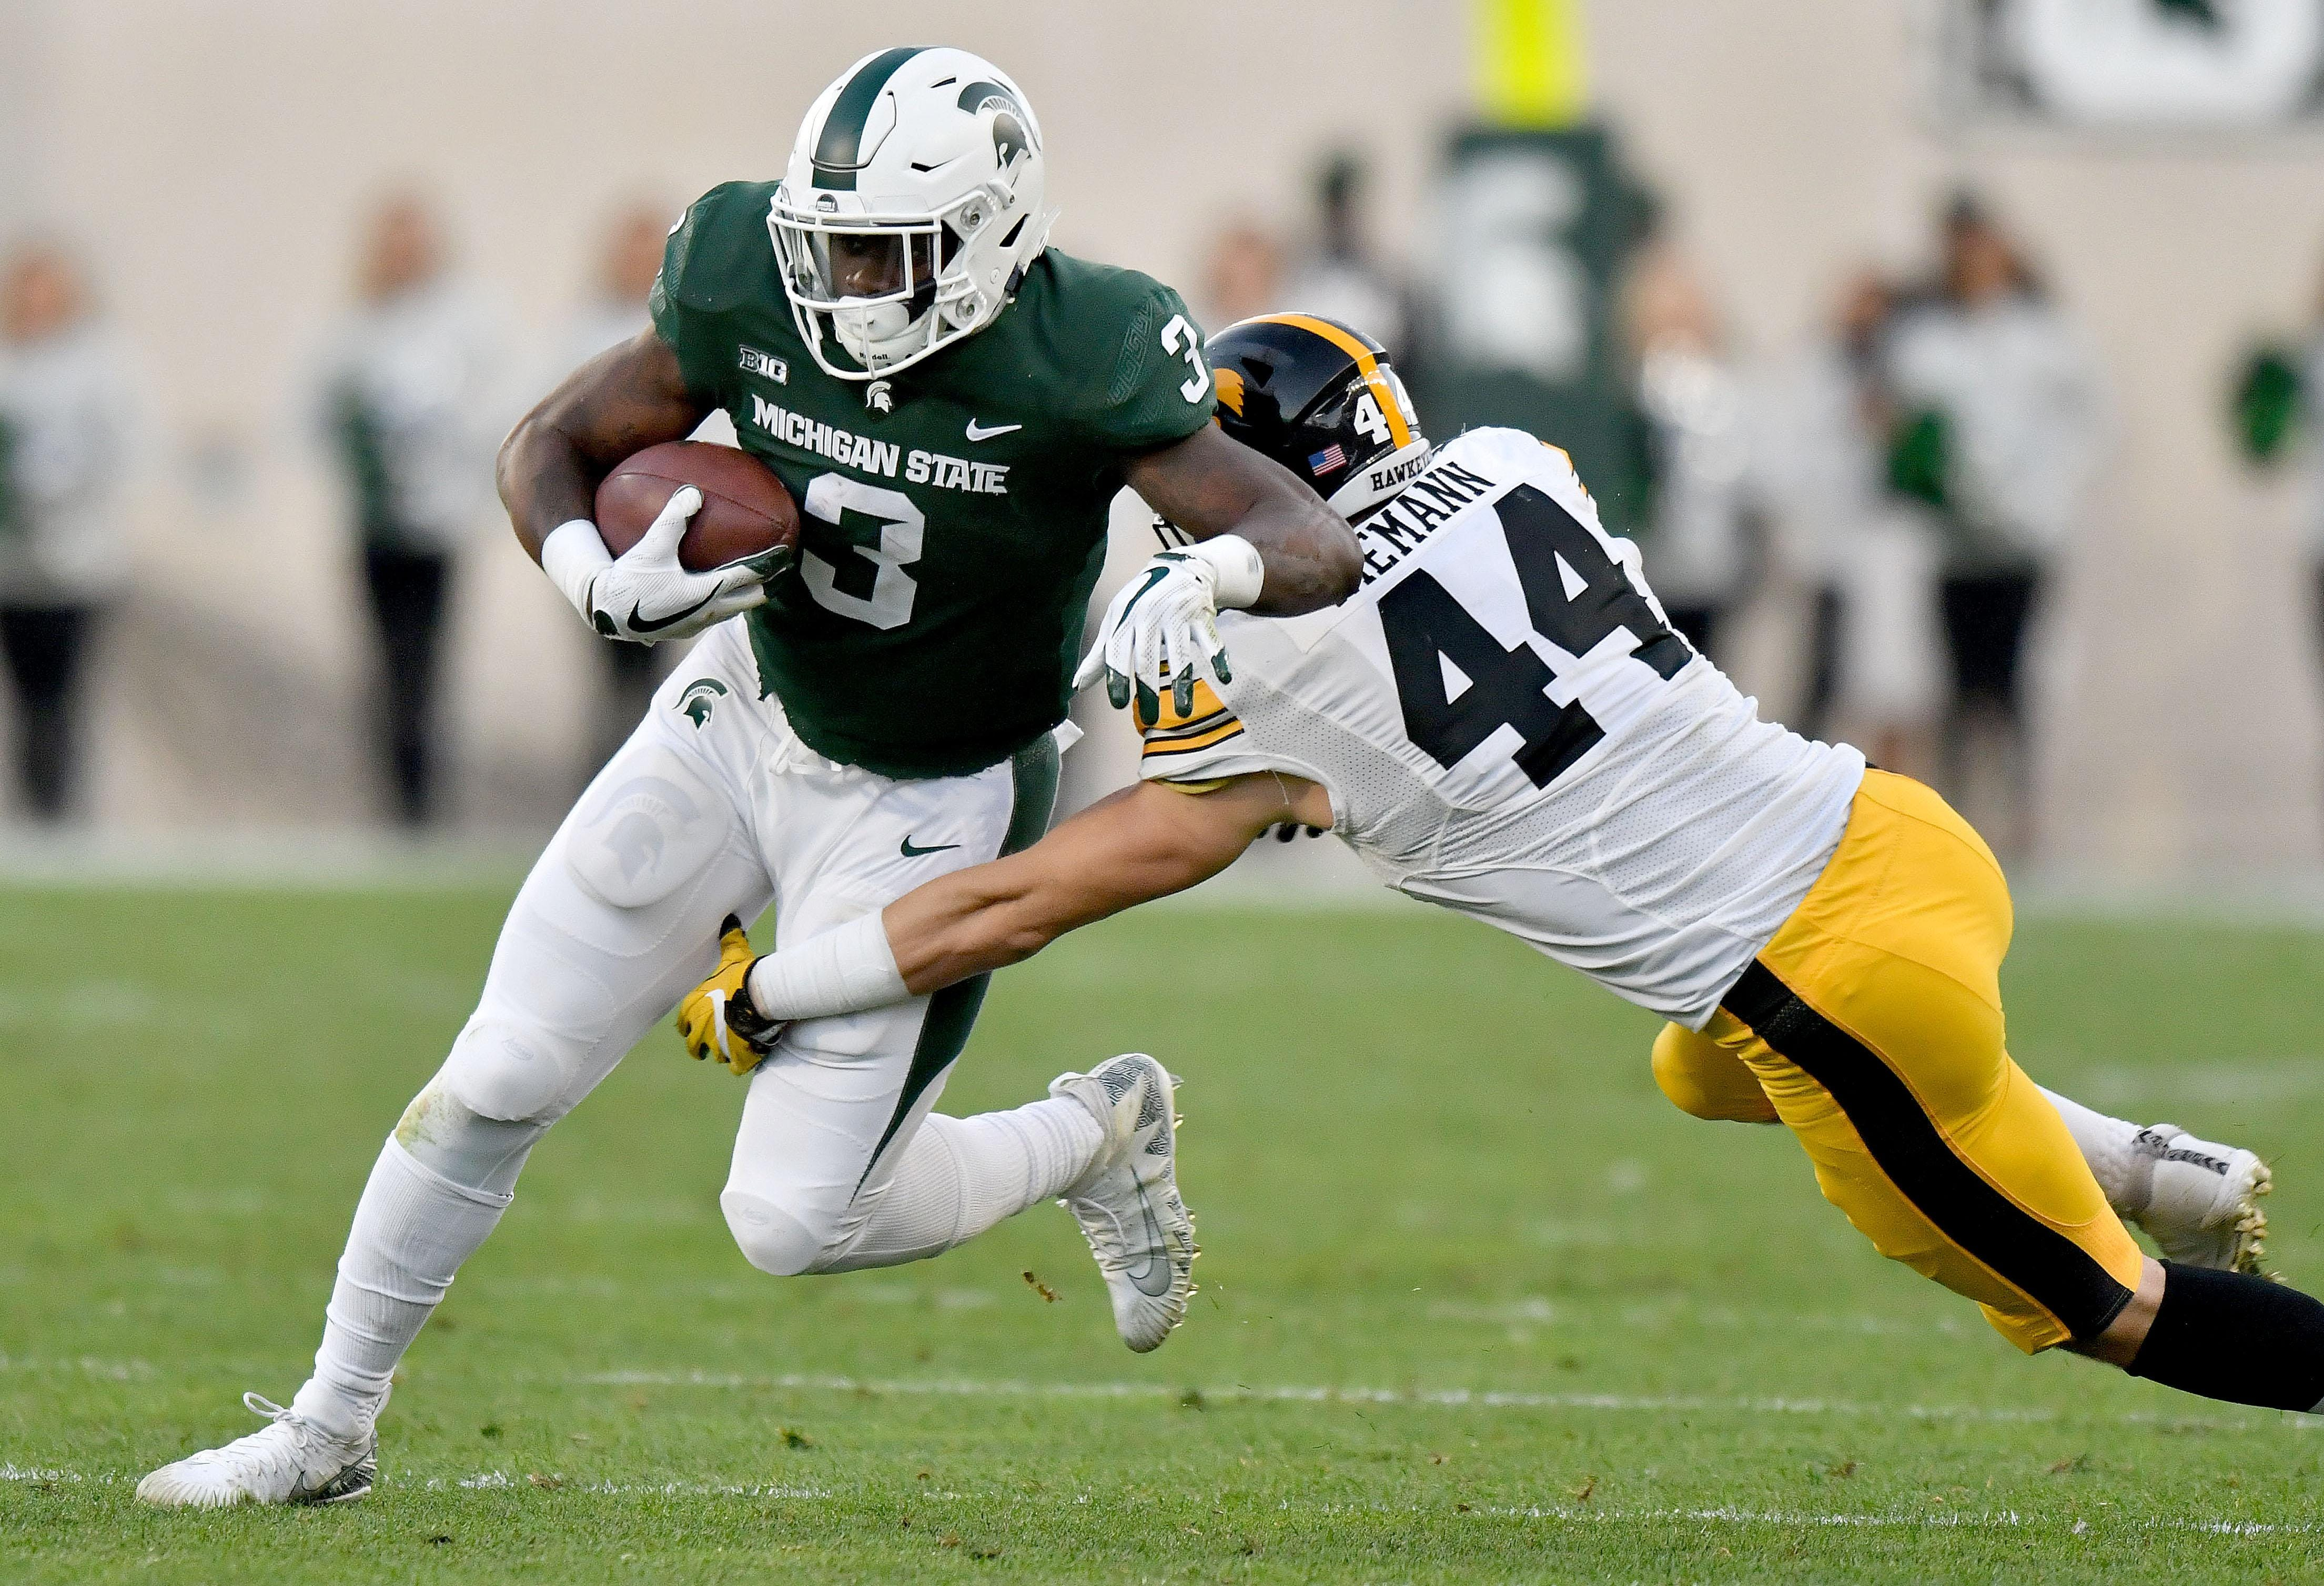 MSU's LJ Scott faces charge for suspended license